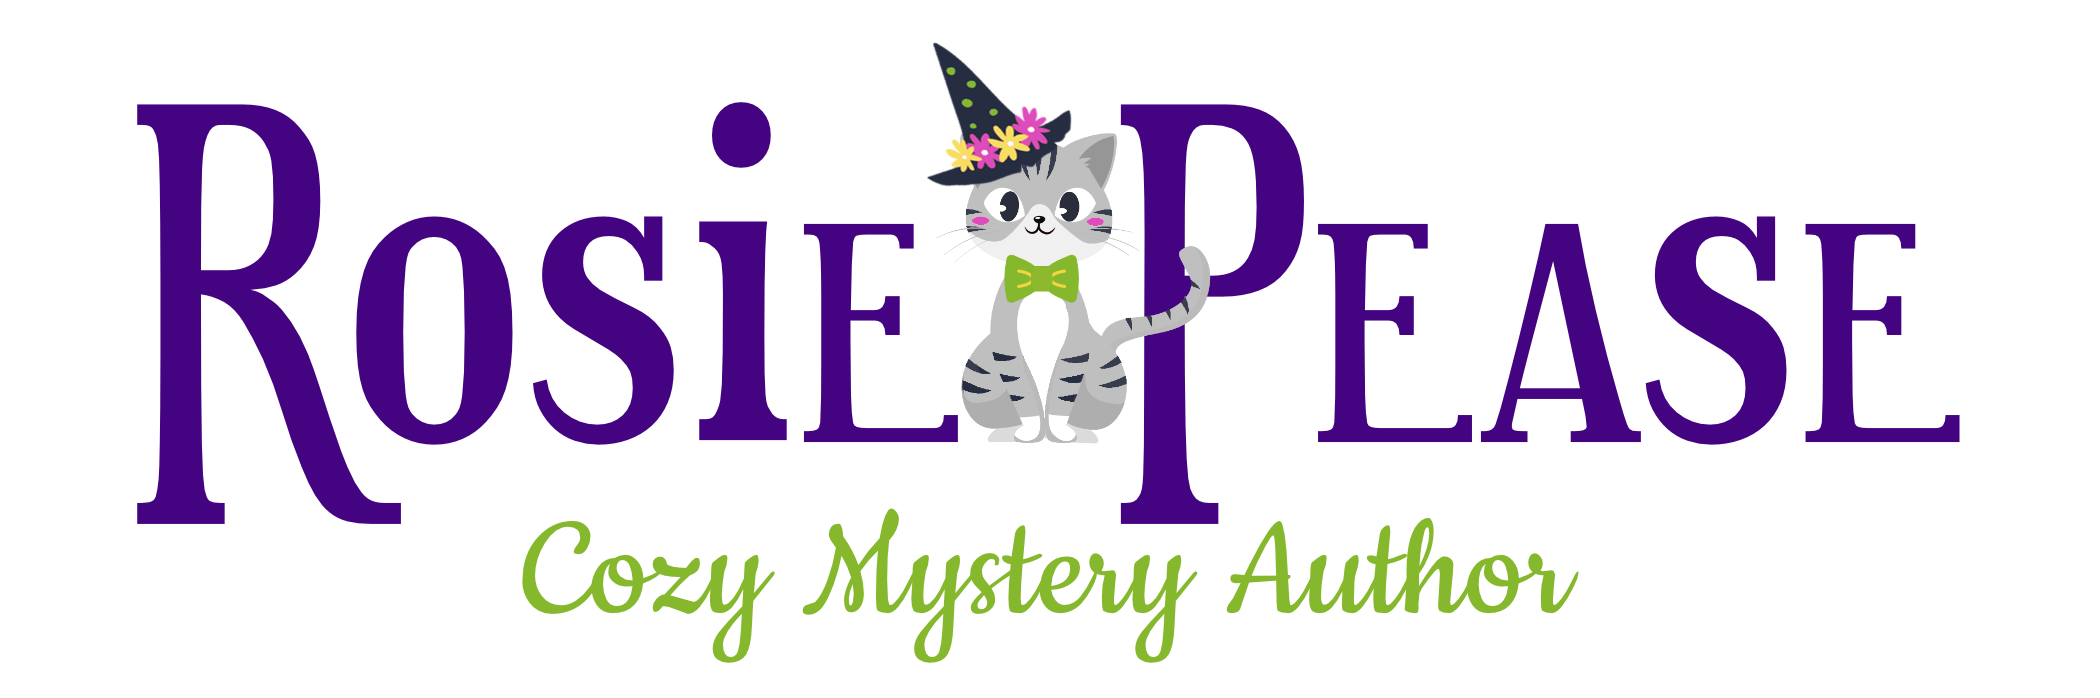 The Website of Cozy Mystery Author Rosie Pease